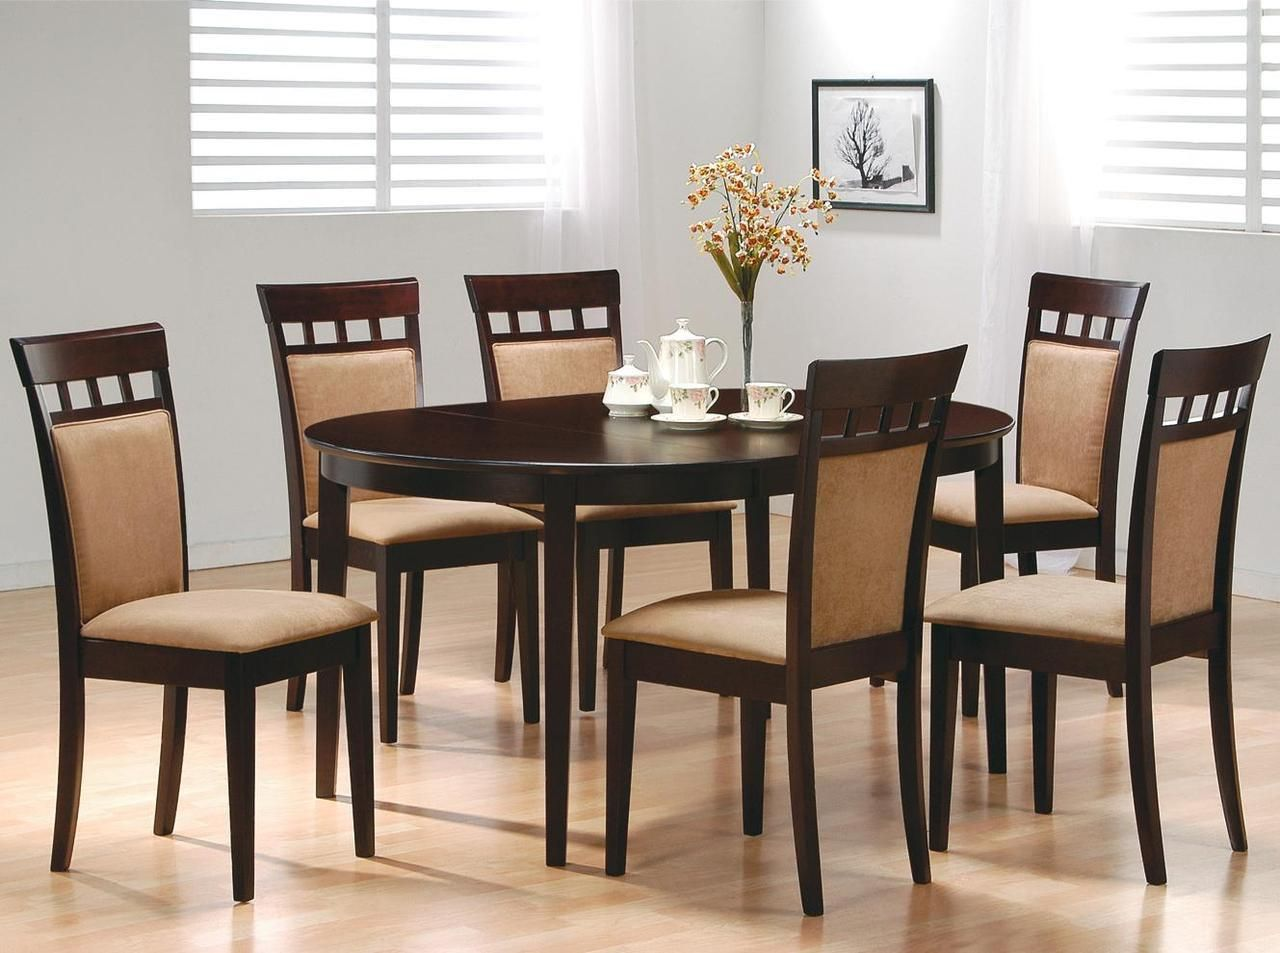 The Harmony Dining Collection